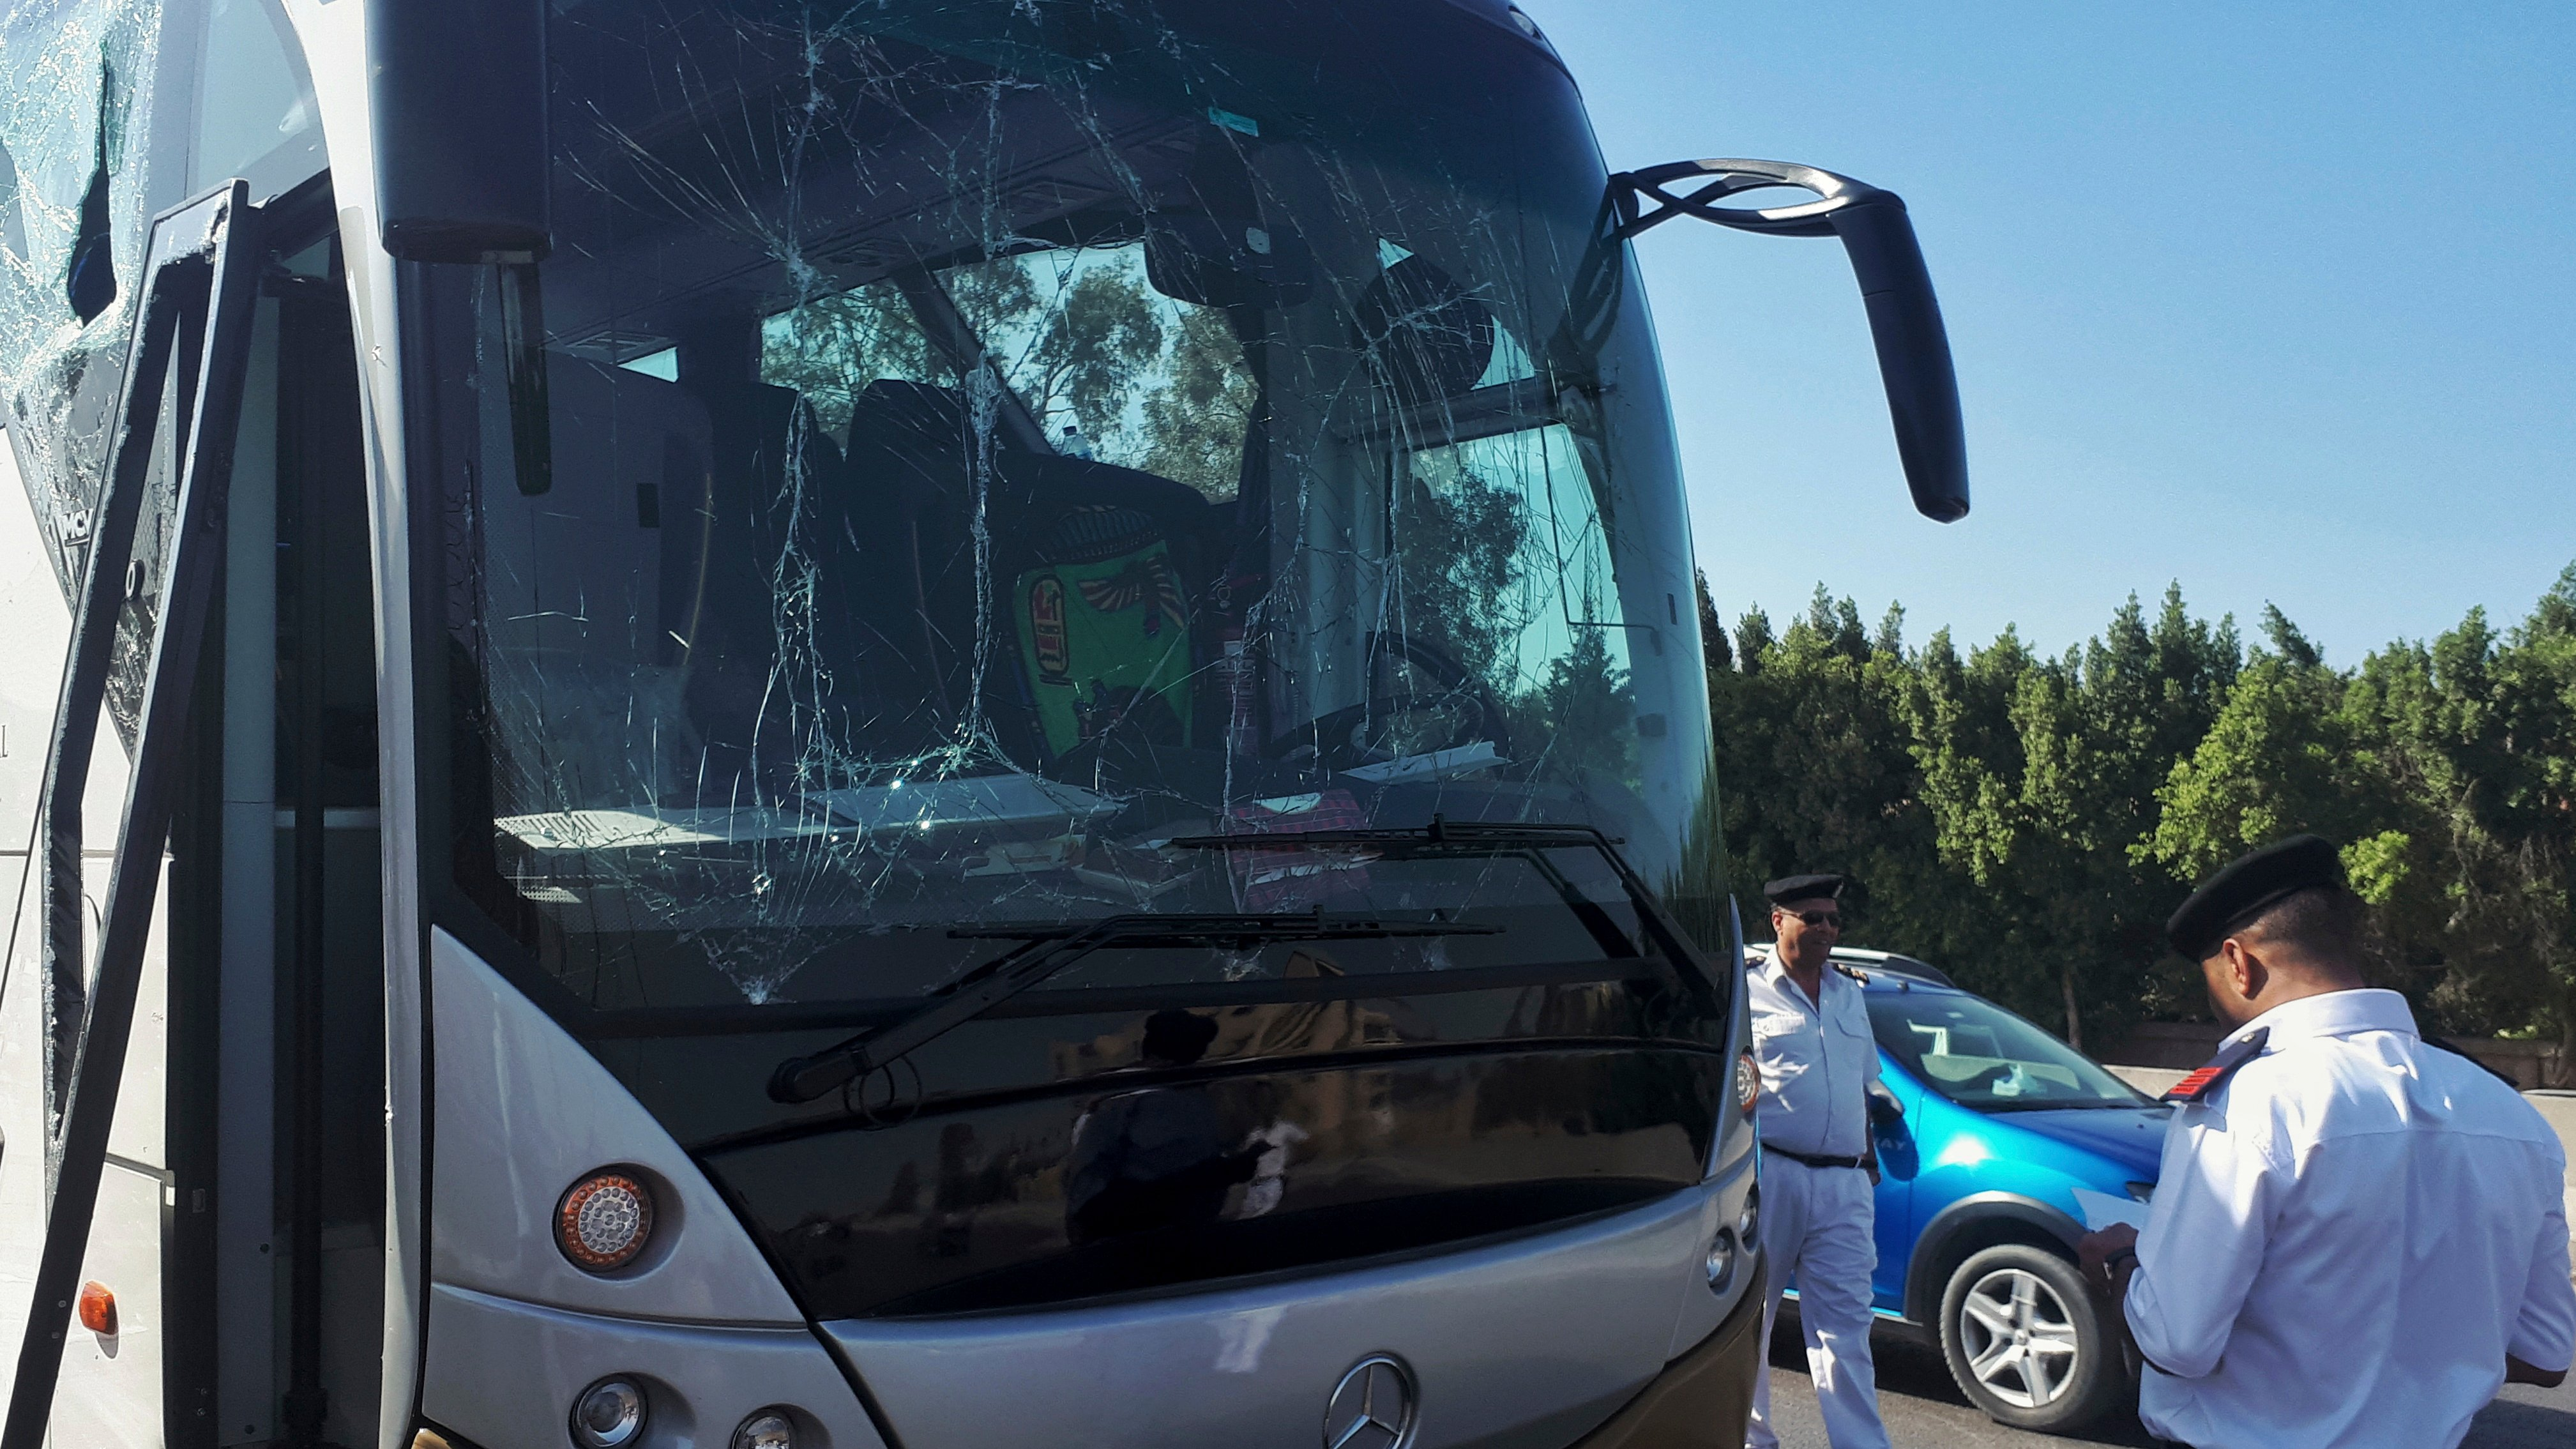 A bus damaged during a bomb blast near Egypt's famed Giza pyramids.